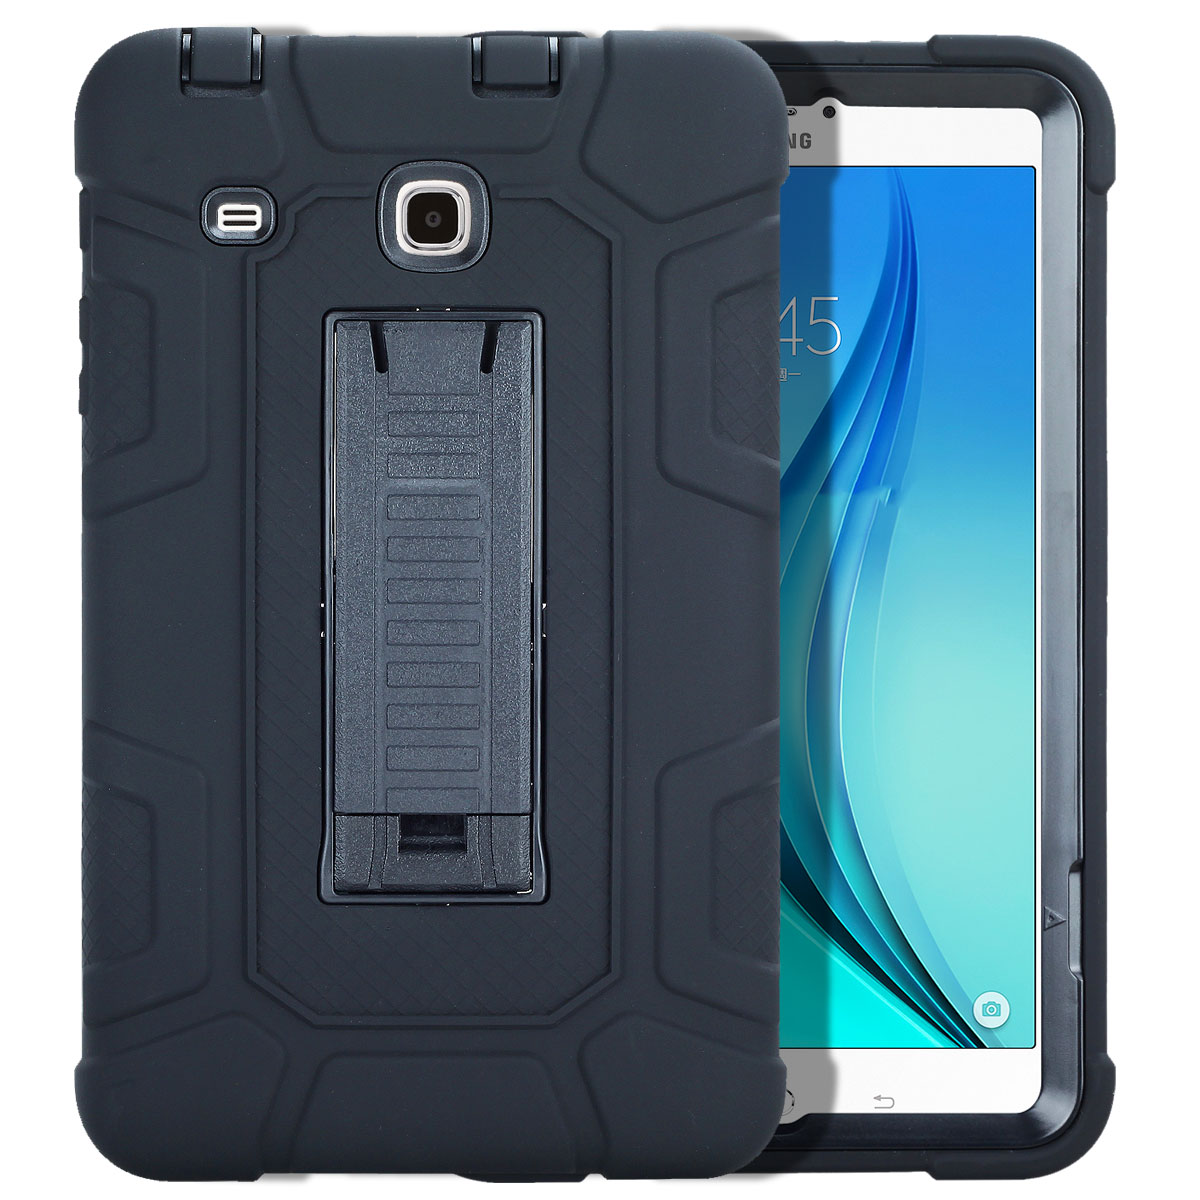 quality design 6969c 77971 Details about For Samsung Galaxy Tab S2 9.7 / 8.0 Inch Tablet Shockproof  Drop Hard Bumper Case